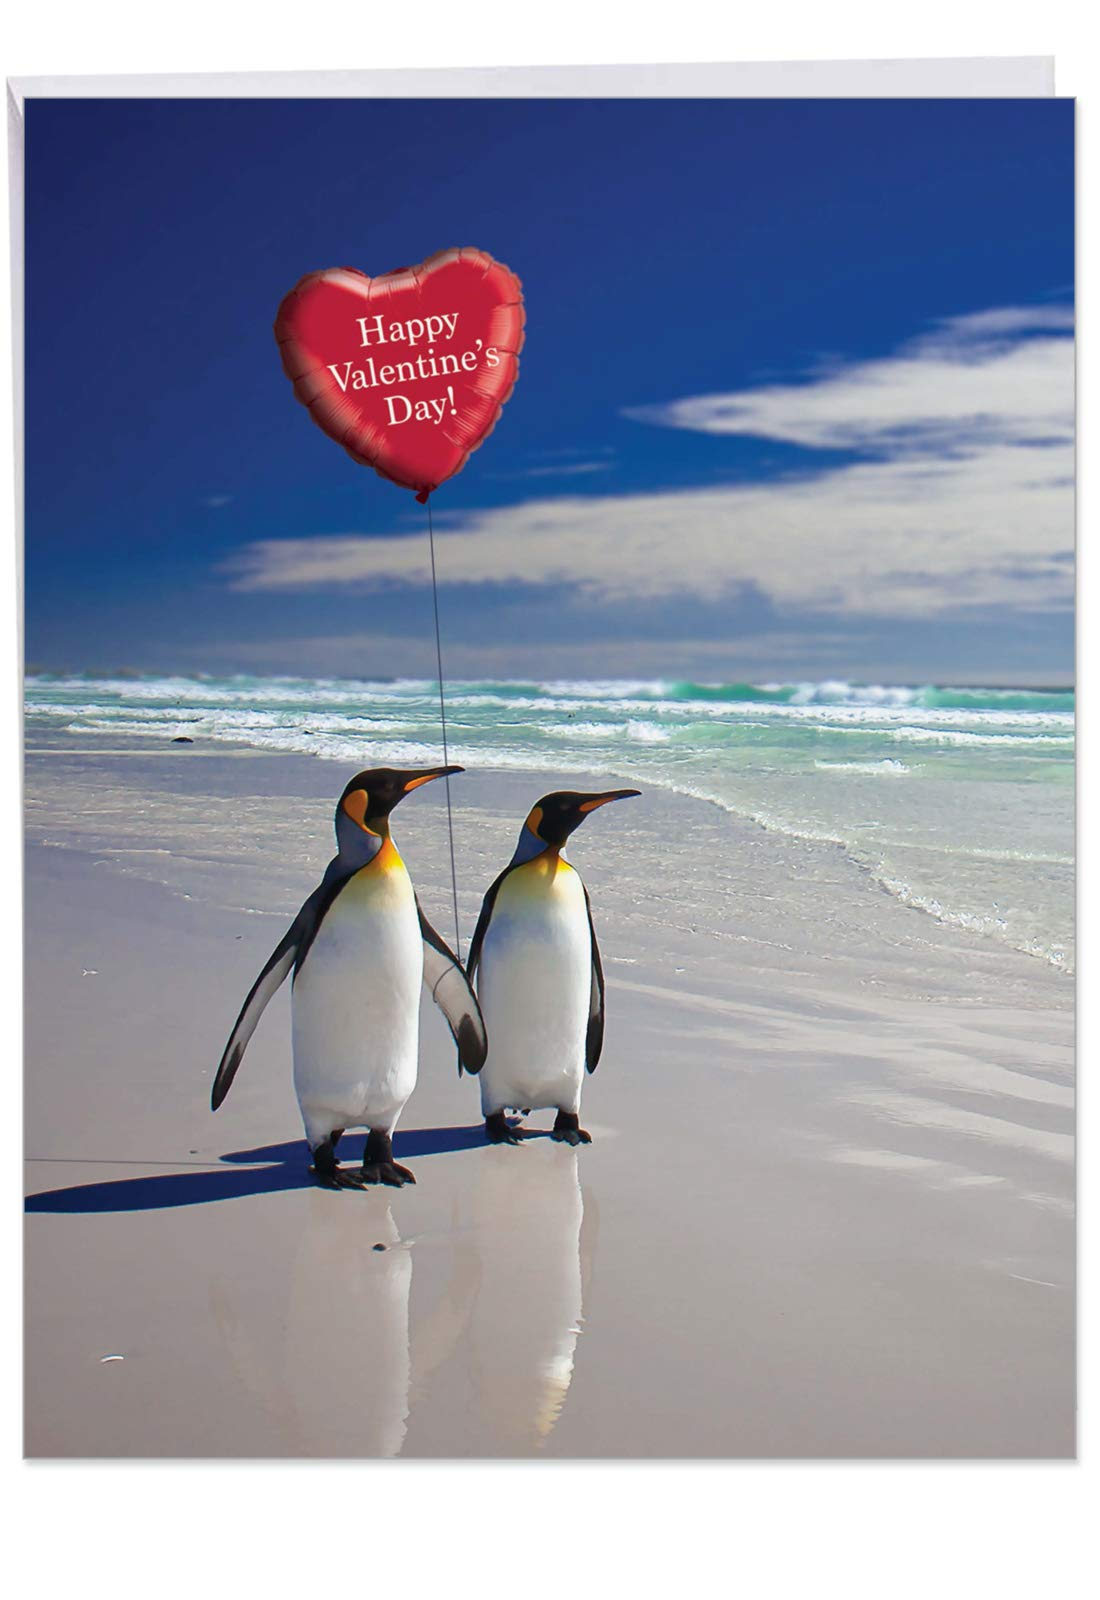 Extra Large Beach Penguins Card with Envelope (Letterhead 8.5 x 11 Inch) - Romantic Vacation, Cute Animal Valentine's Greeting Card - Funny Stationery Valentines Card for Wife, Husband J3514VDG